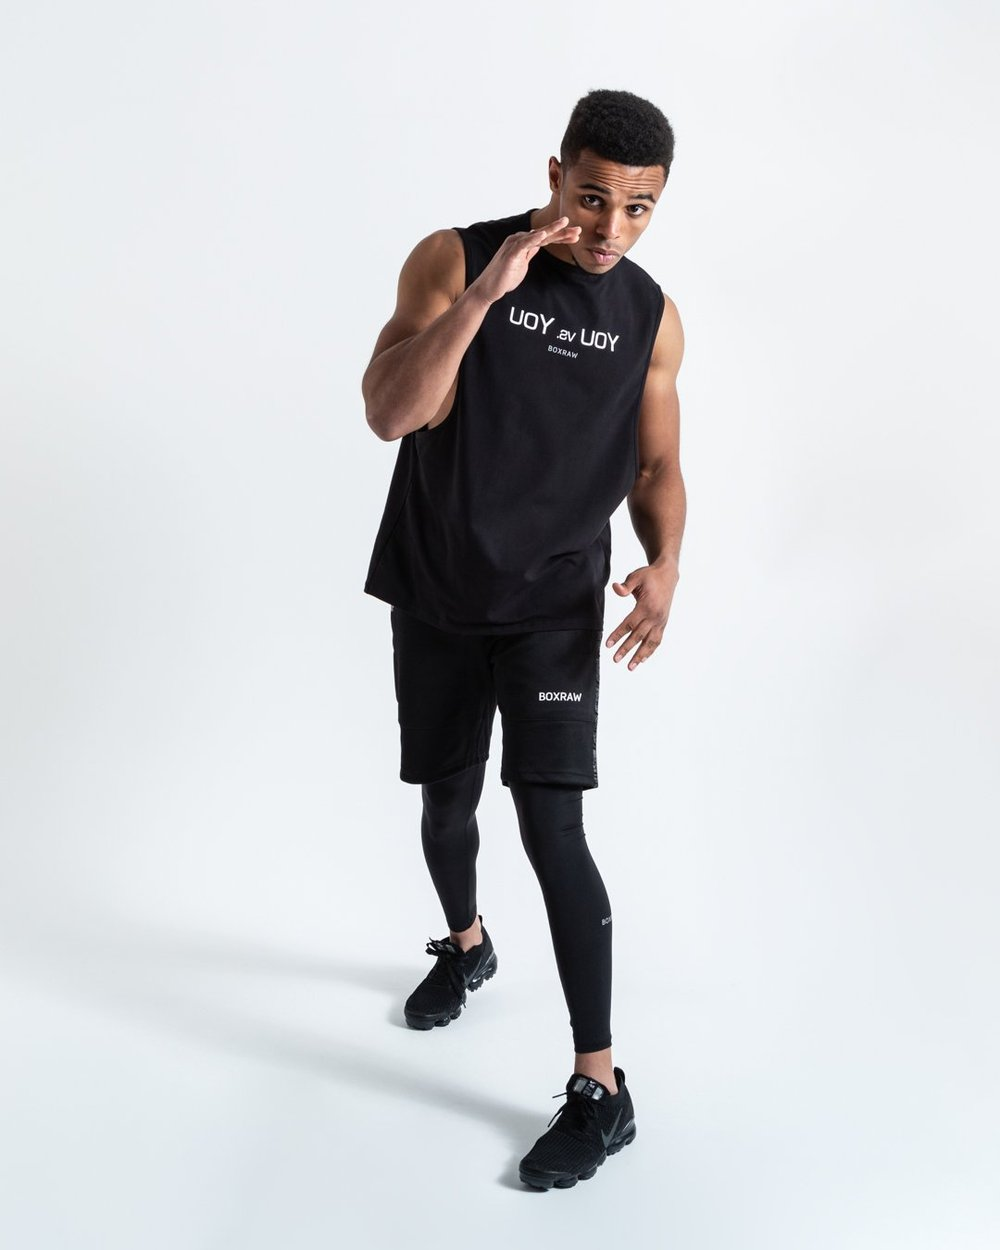 YOU VS. YOU MUSCLE TANK - BLACK - Pandemic Fight Gear Inc.